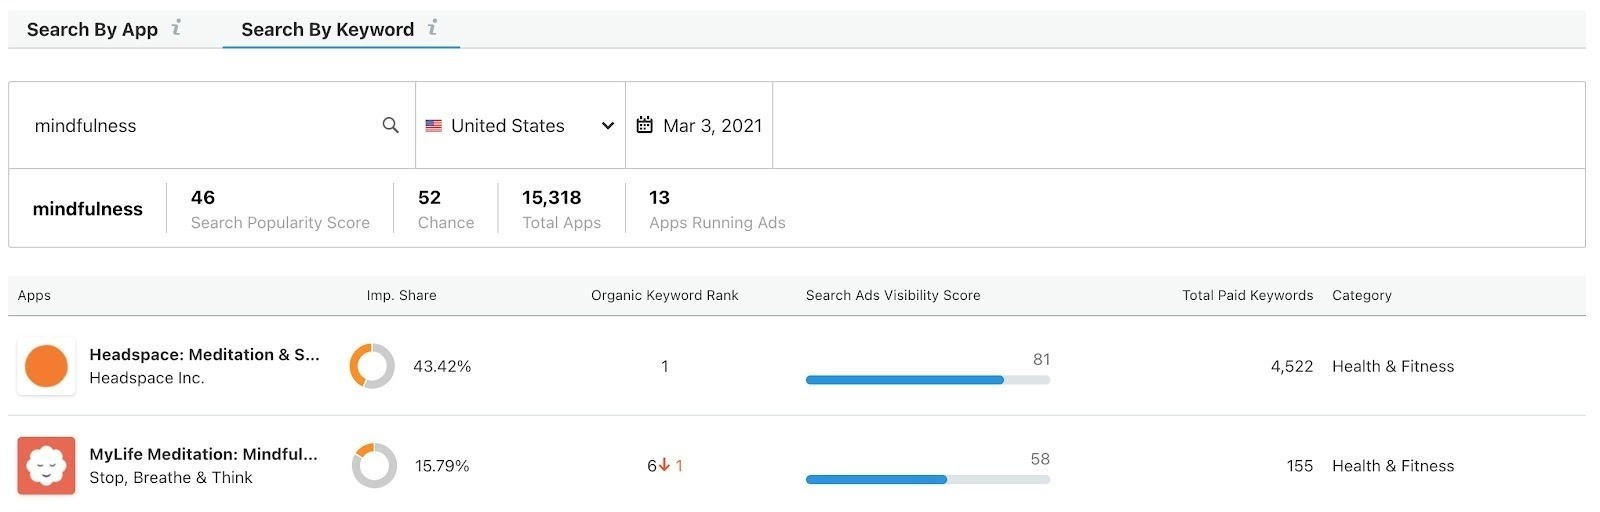 Mobile App Insights image 9